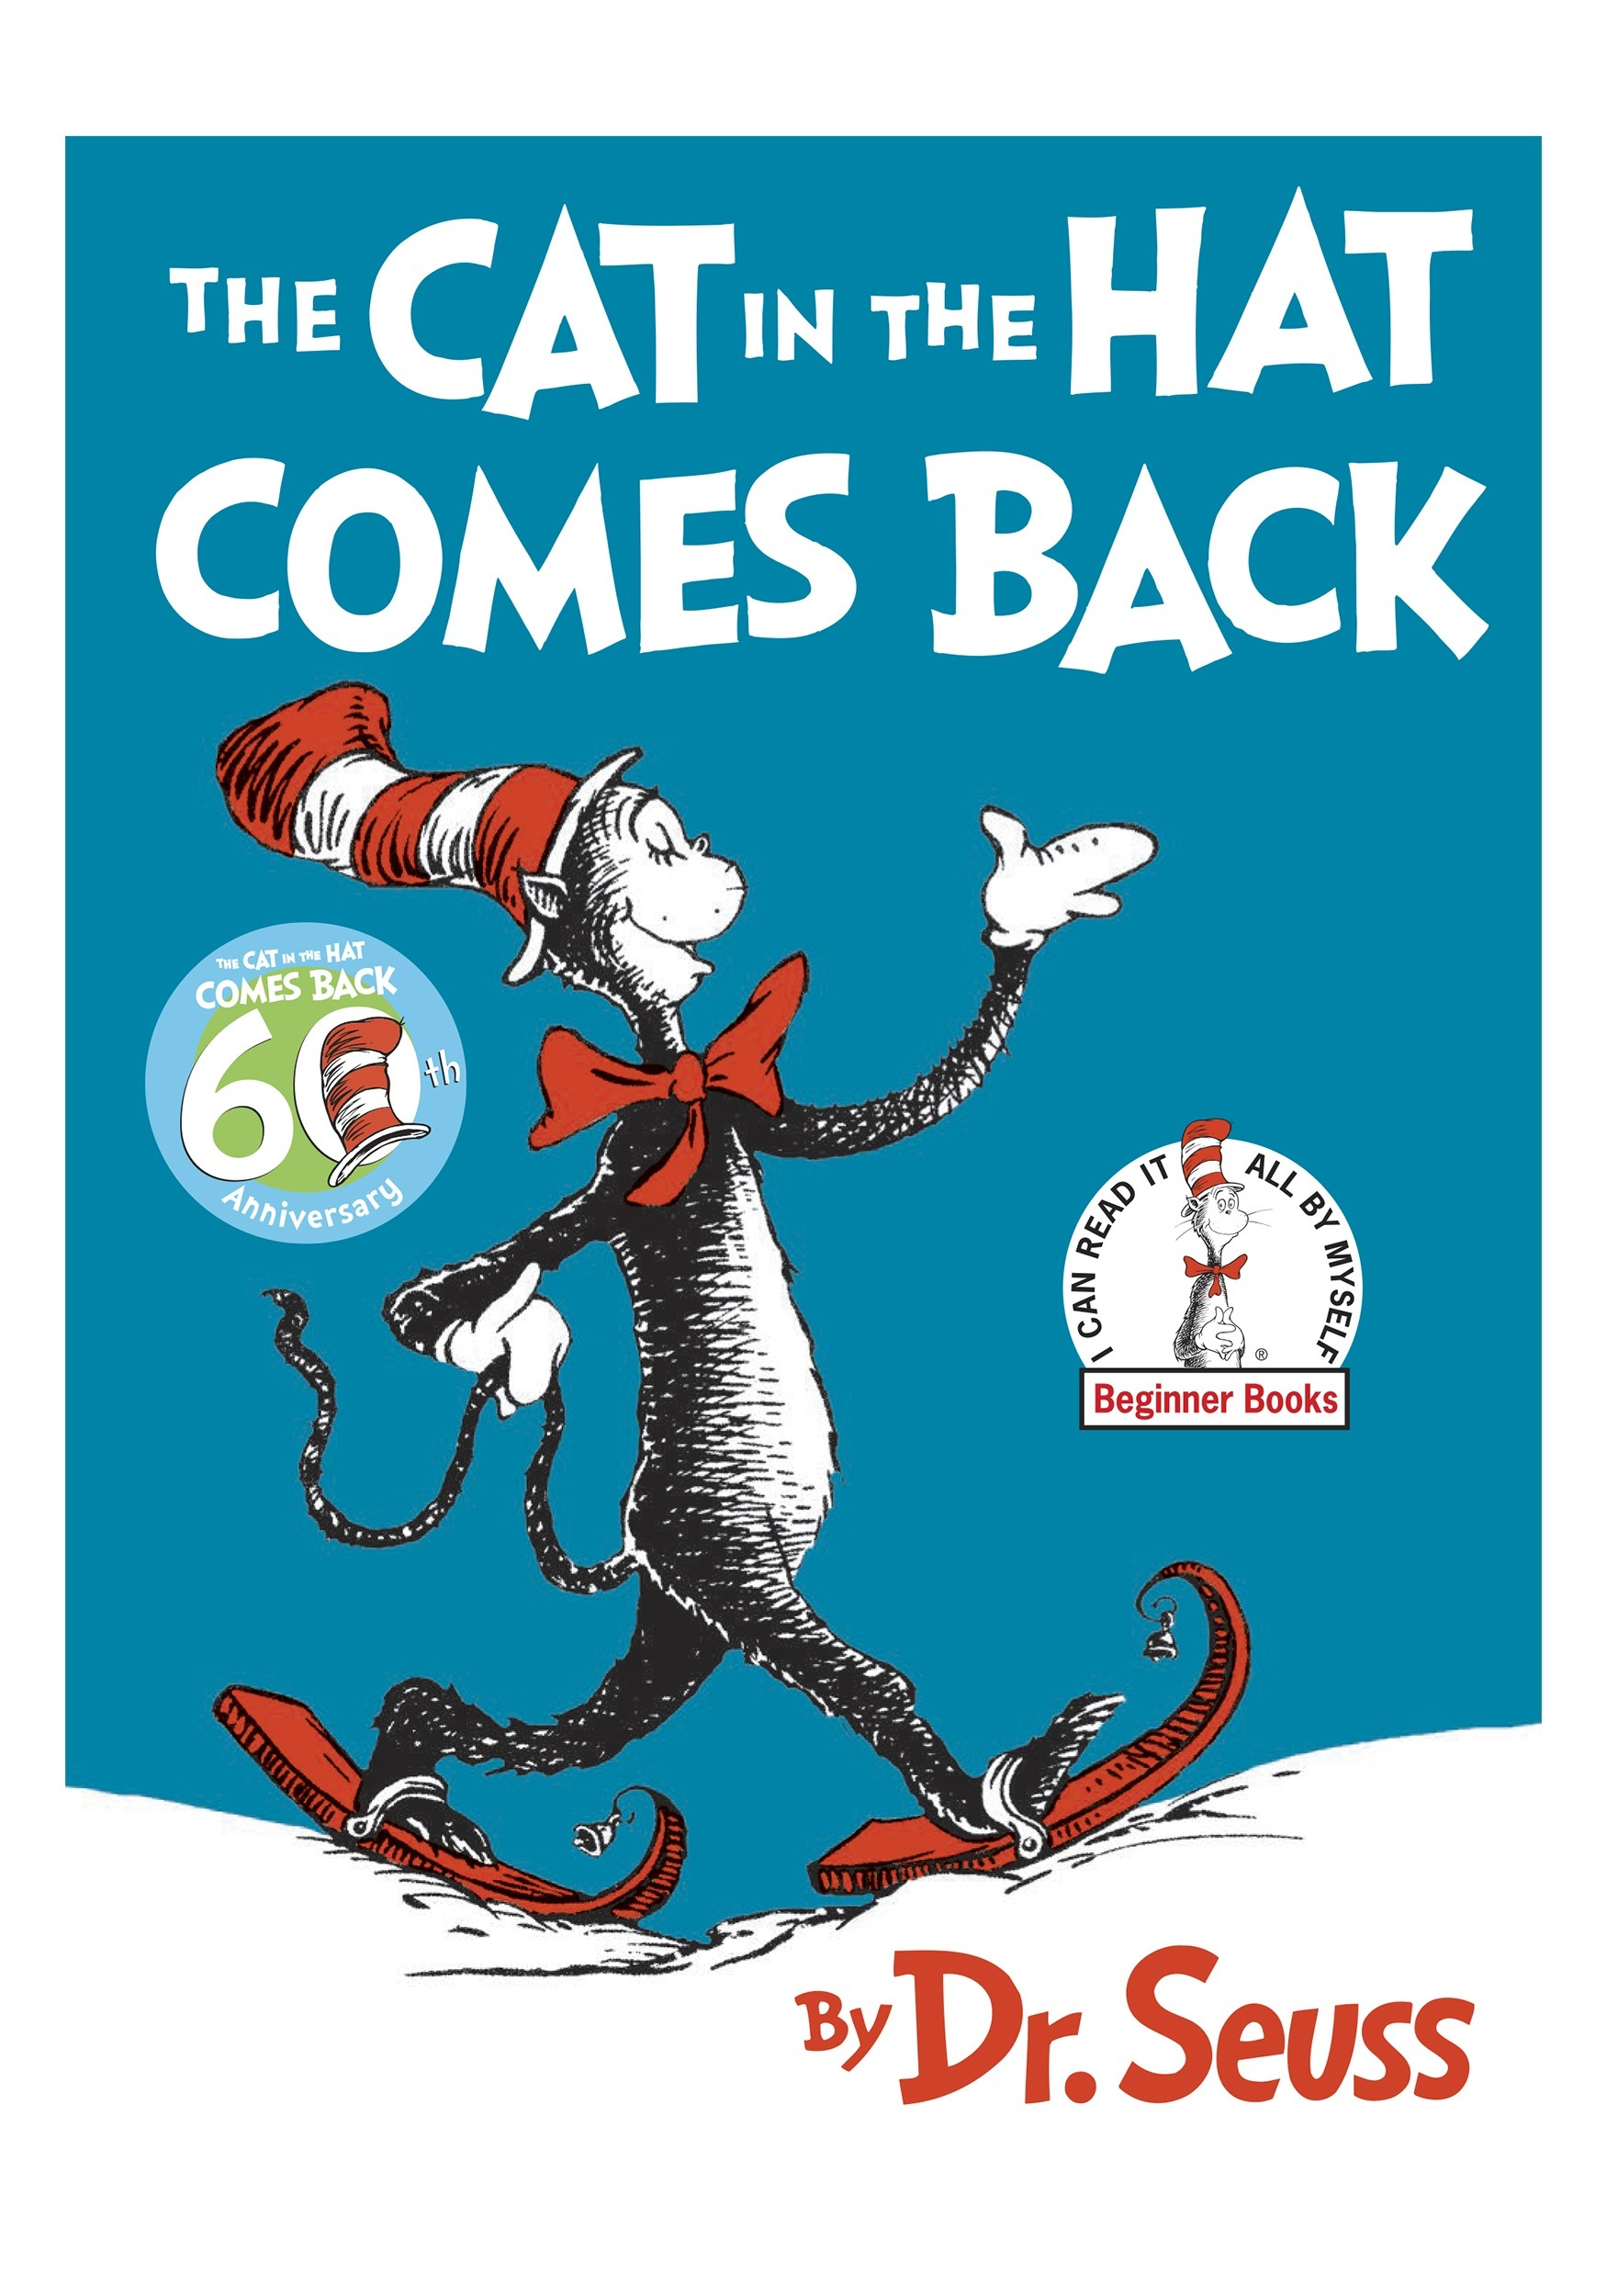 7b2c4dce The Cat in the Hat Comes Back by Dr. Seuss Hardcover